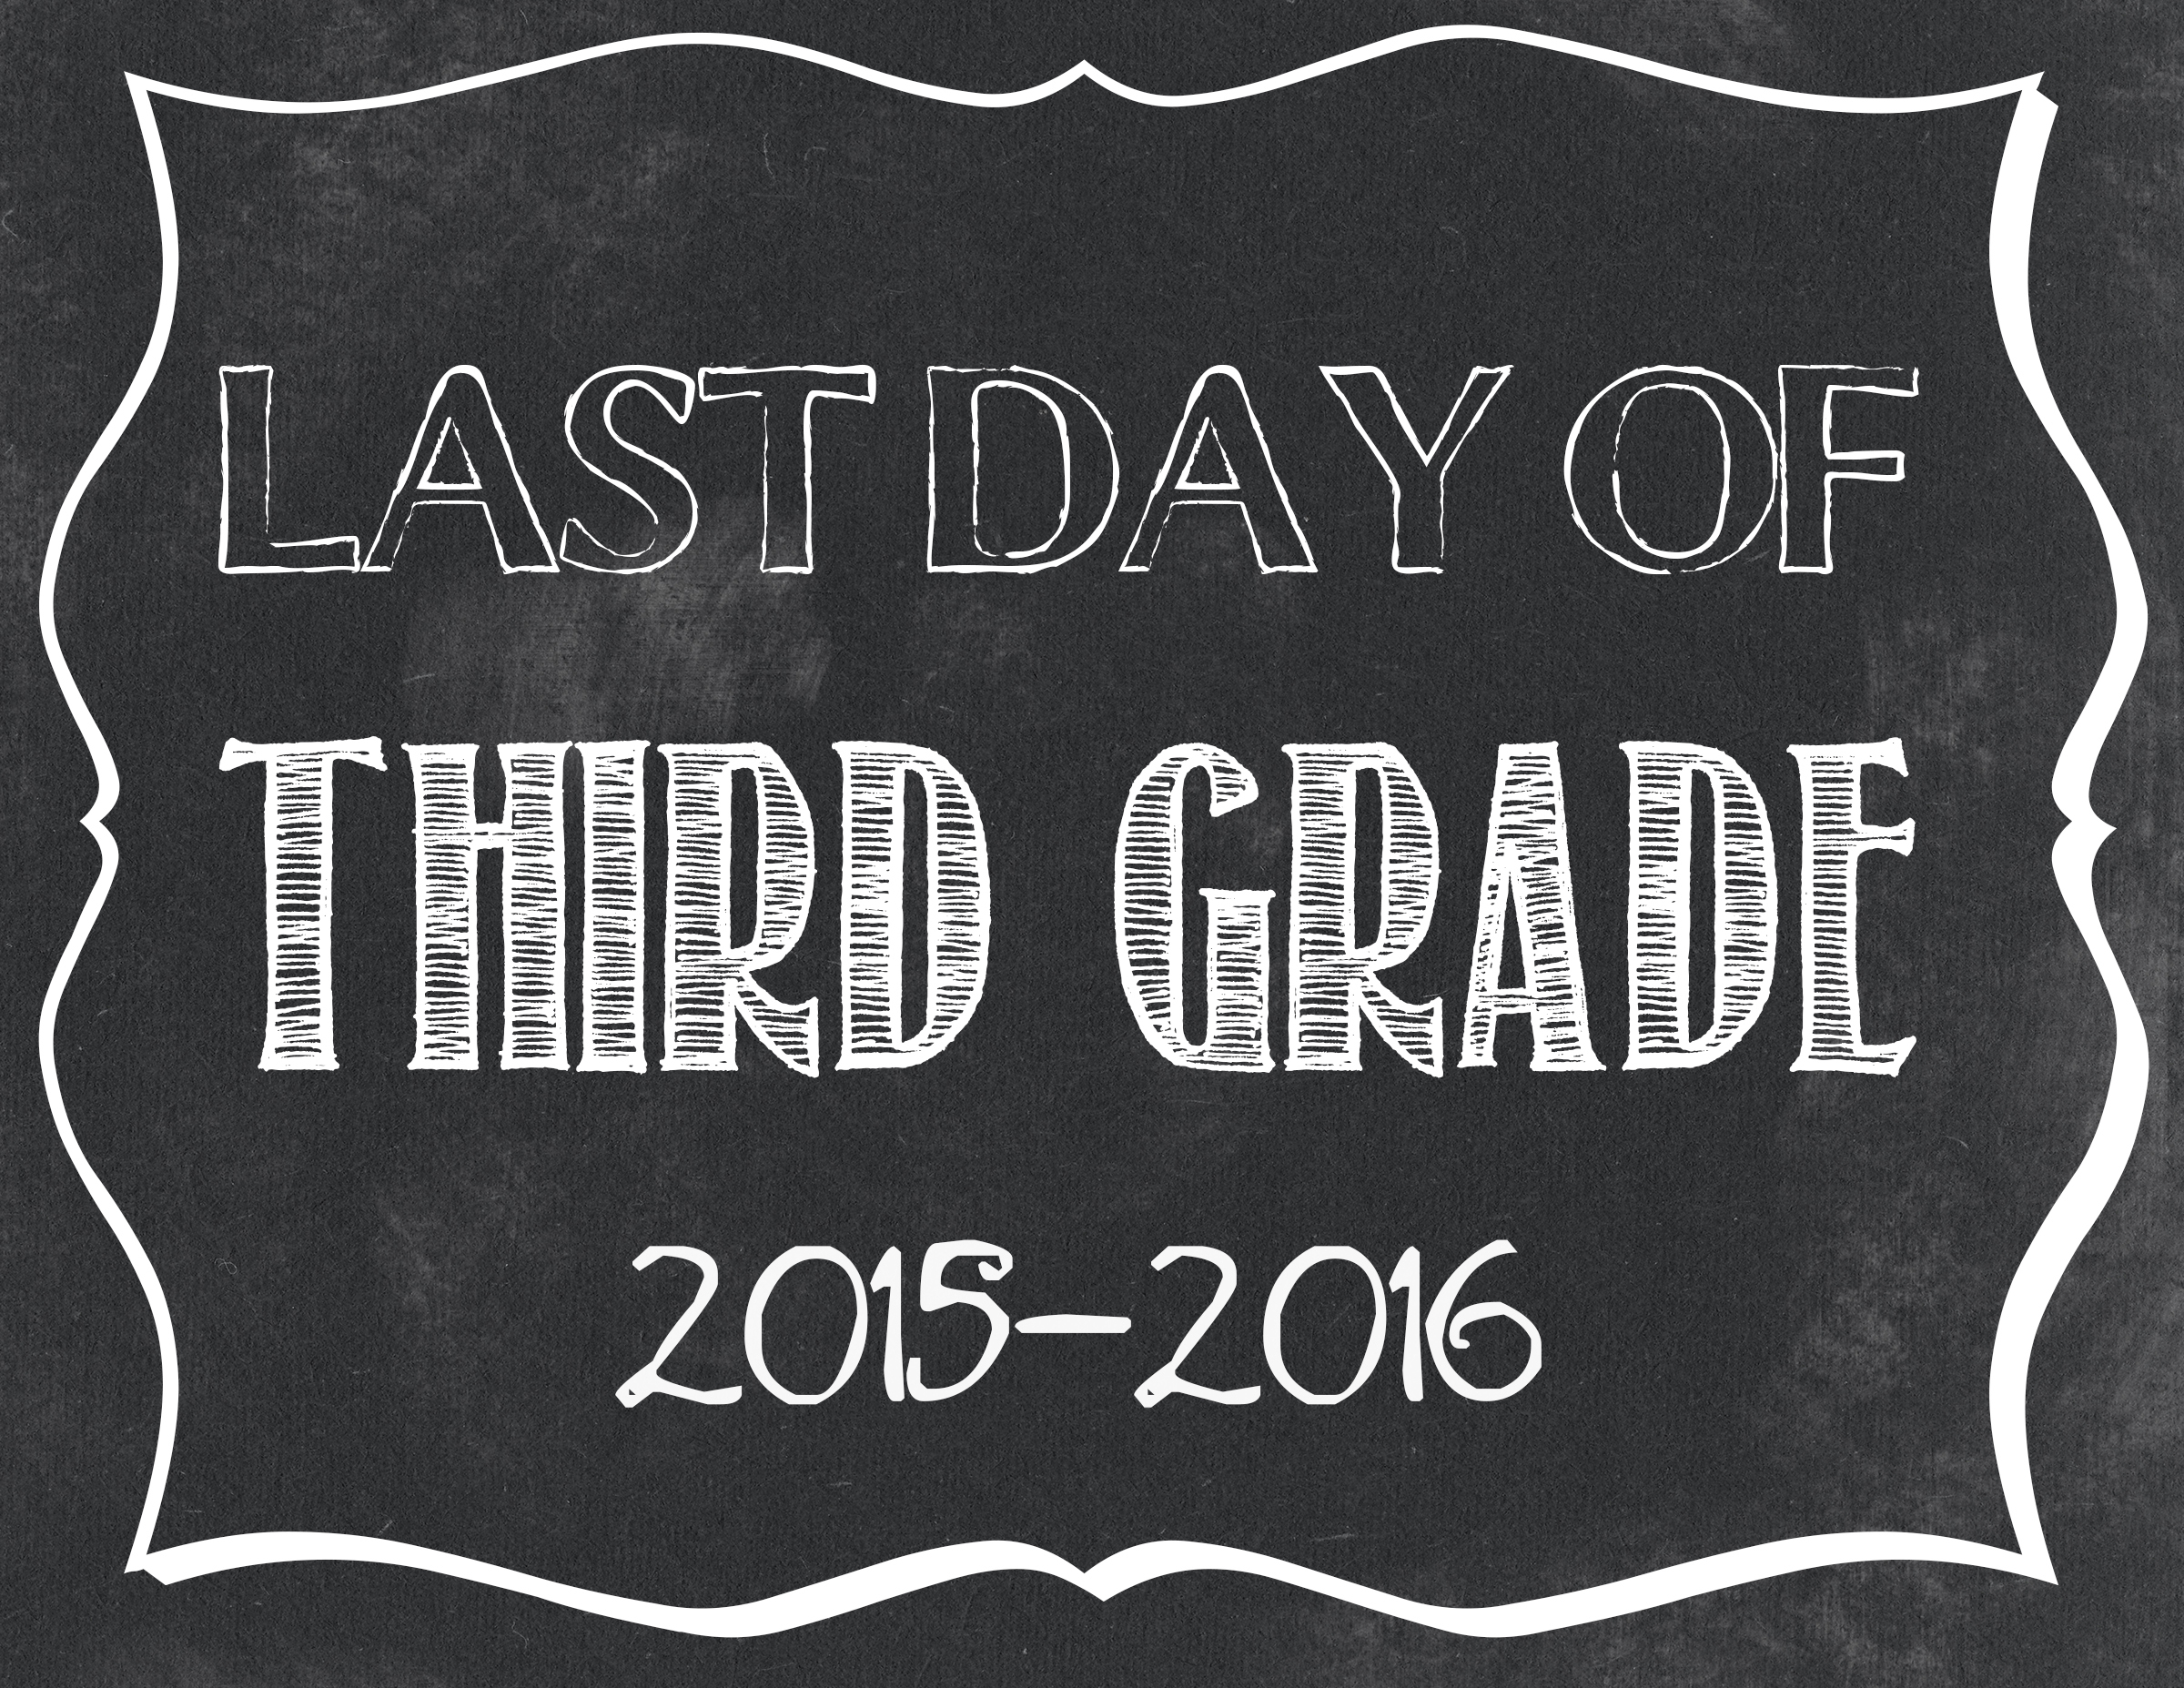 Last Day Of School Free Printables 2015-2016 - Classy Clutter - First Day Of Fourth Grade Free Printable